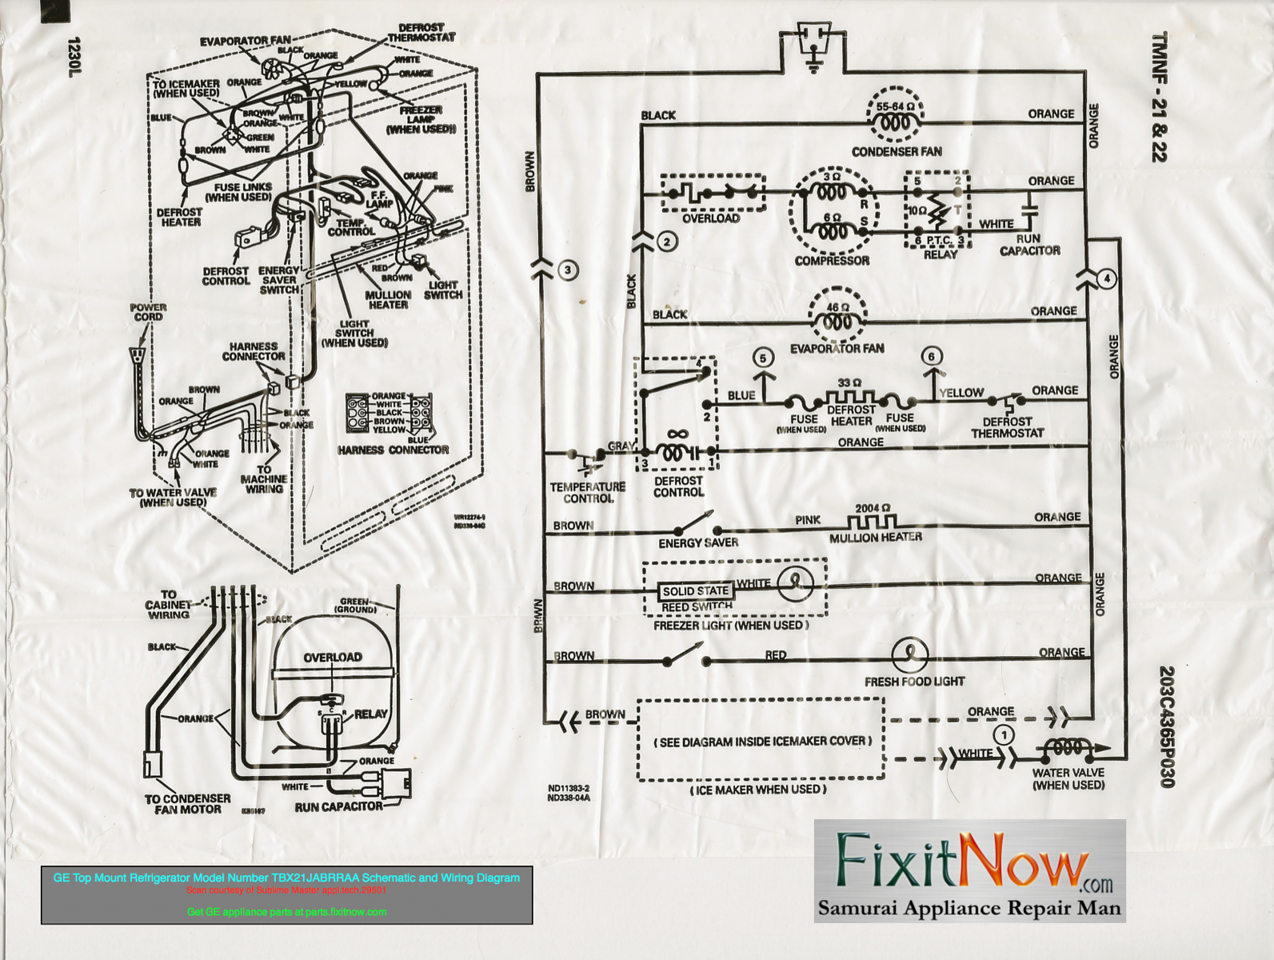 4904374061_e8eb3df6c6_o X2 wiring diagrams and schematics appliantology refrigerator wiring diagram at aneh.co